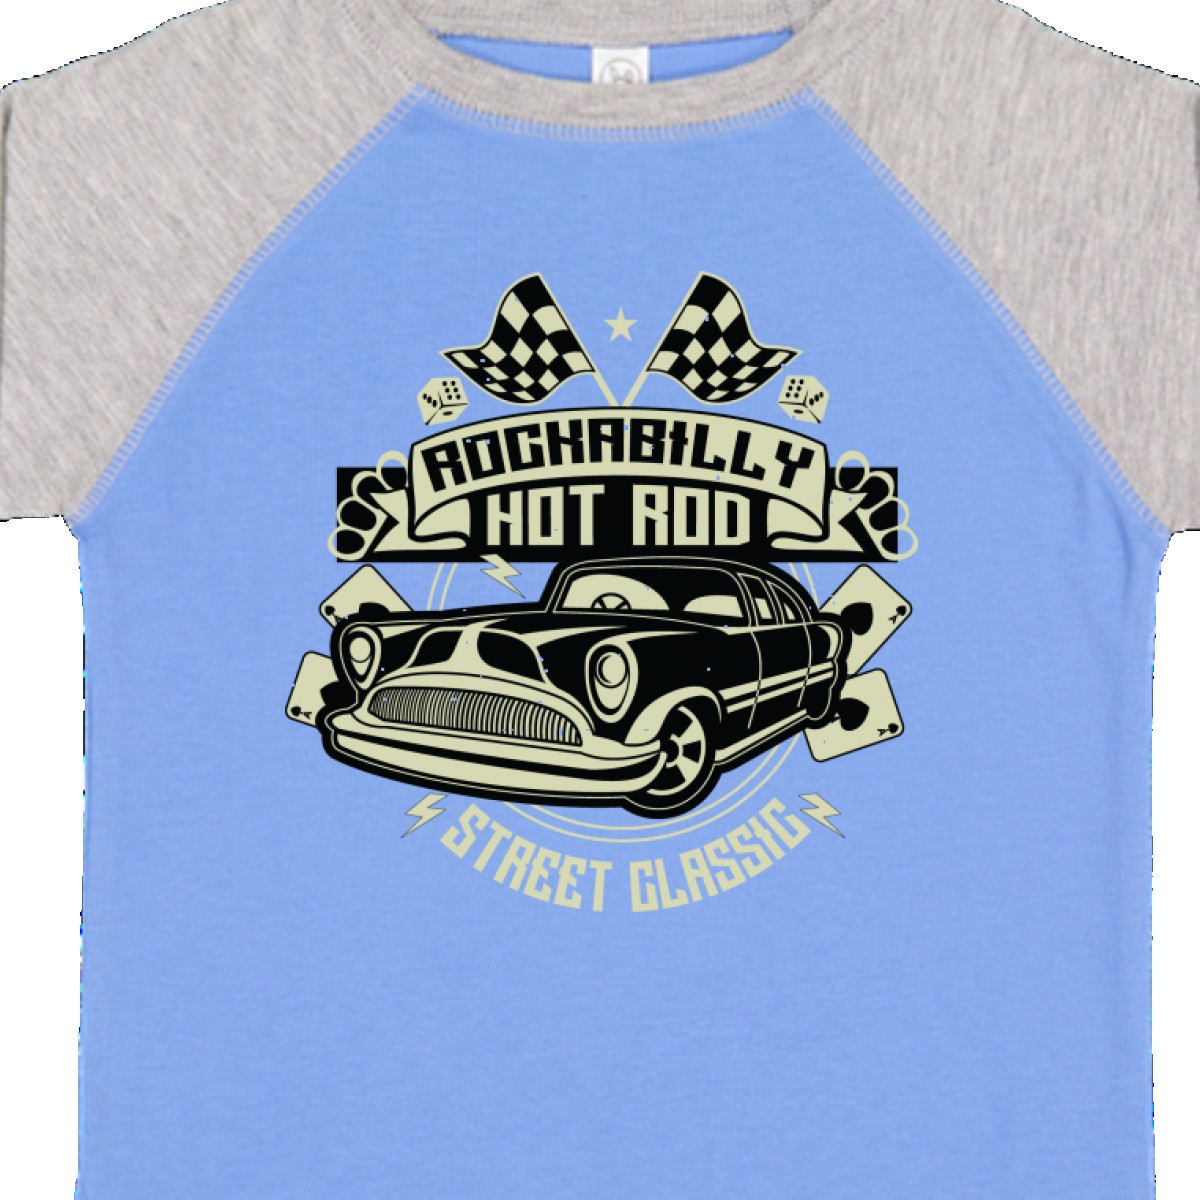 Inktastic-Rockabilly-Hotrod-Toddler-T-Shirt-Hot-Rod-Vintage-Car-Racing-Street thumbnail 8